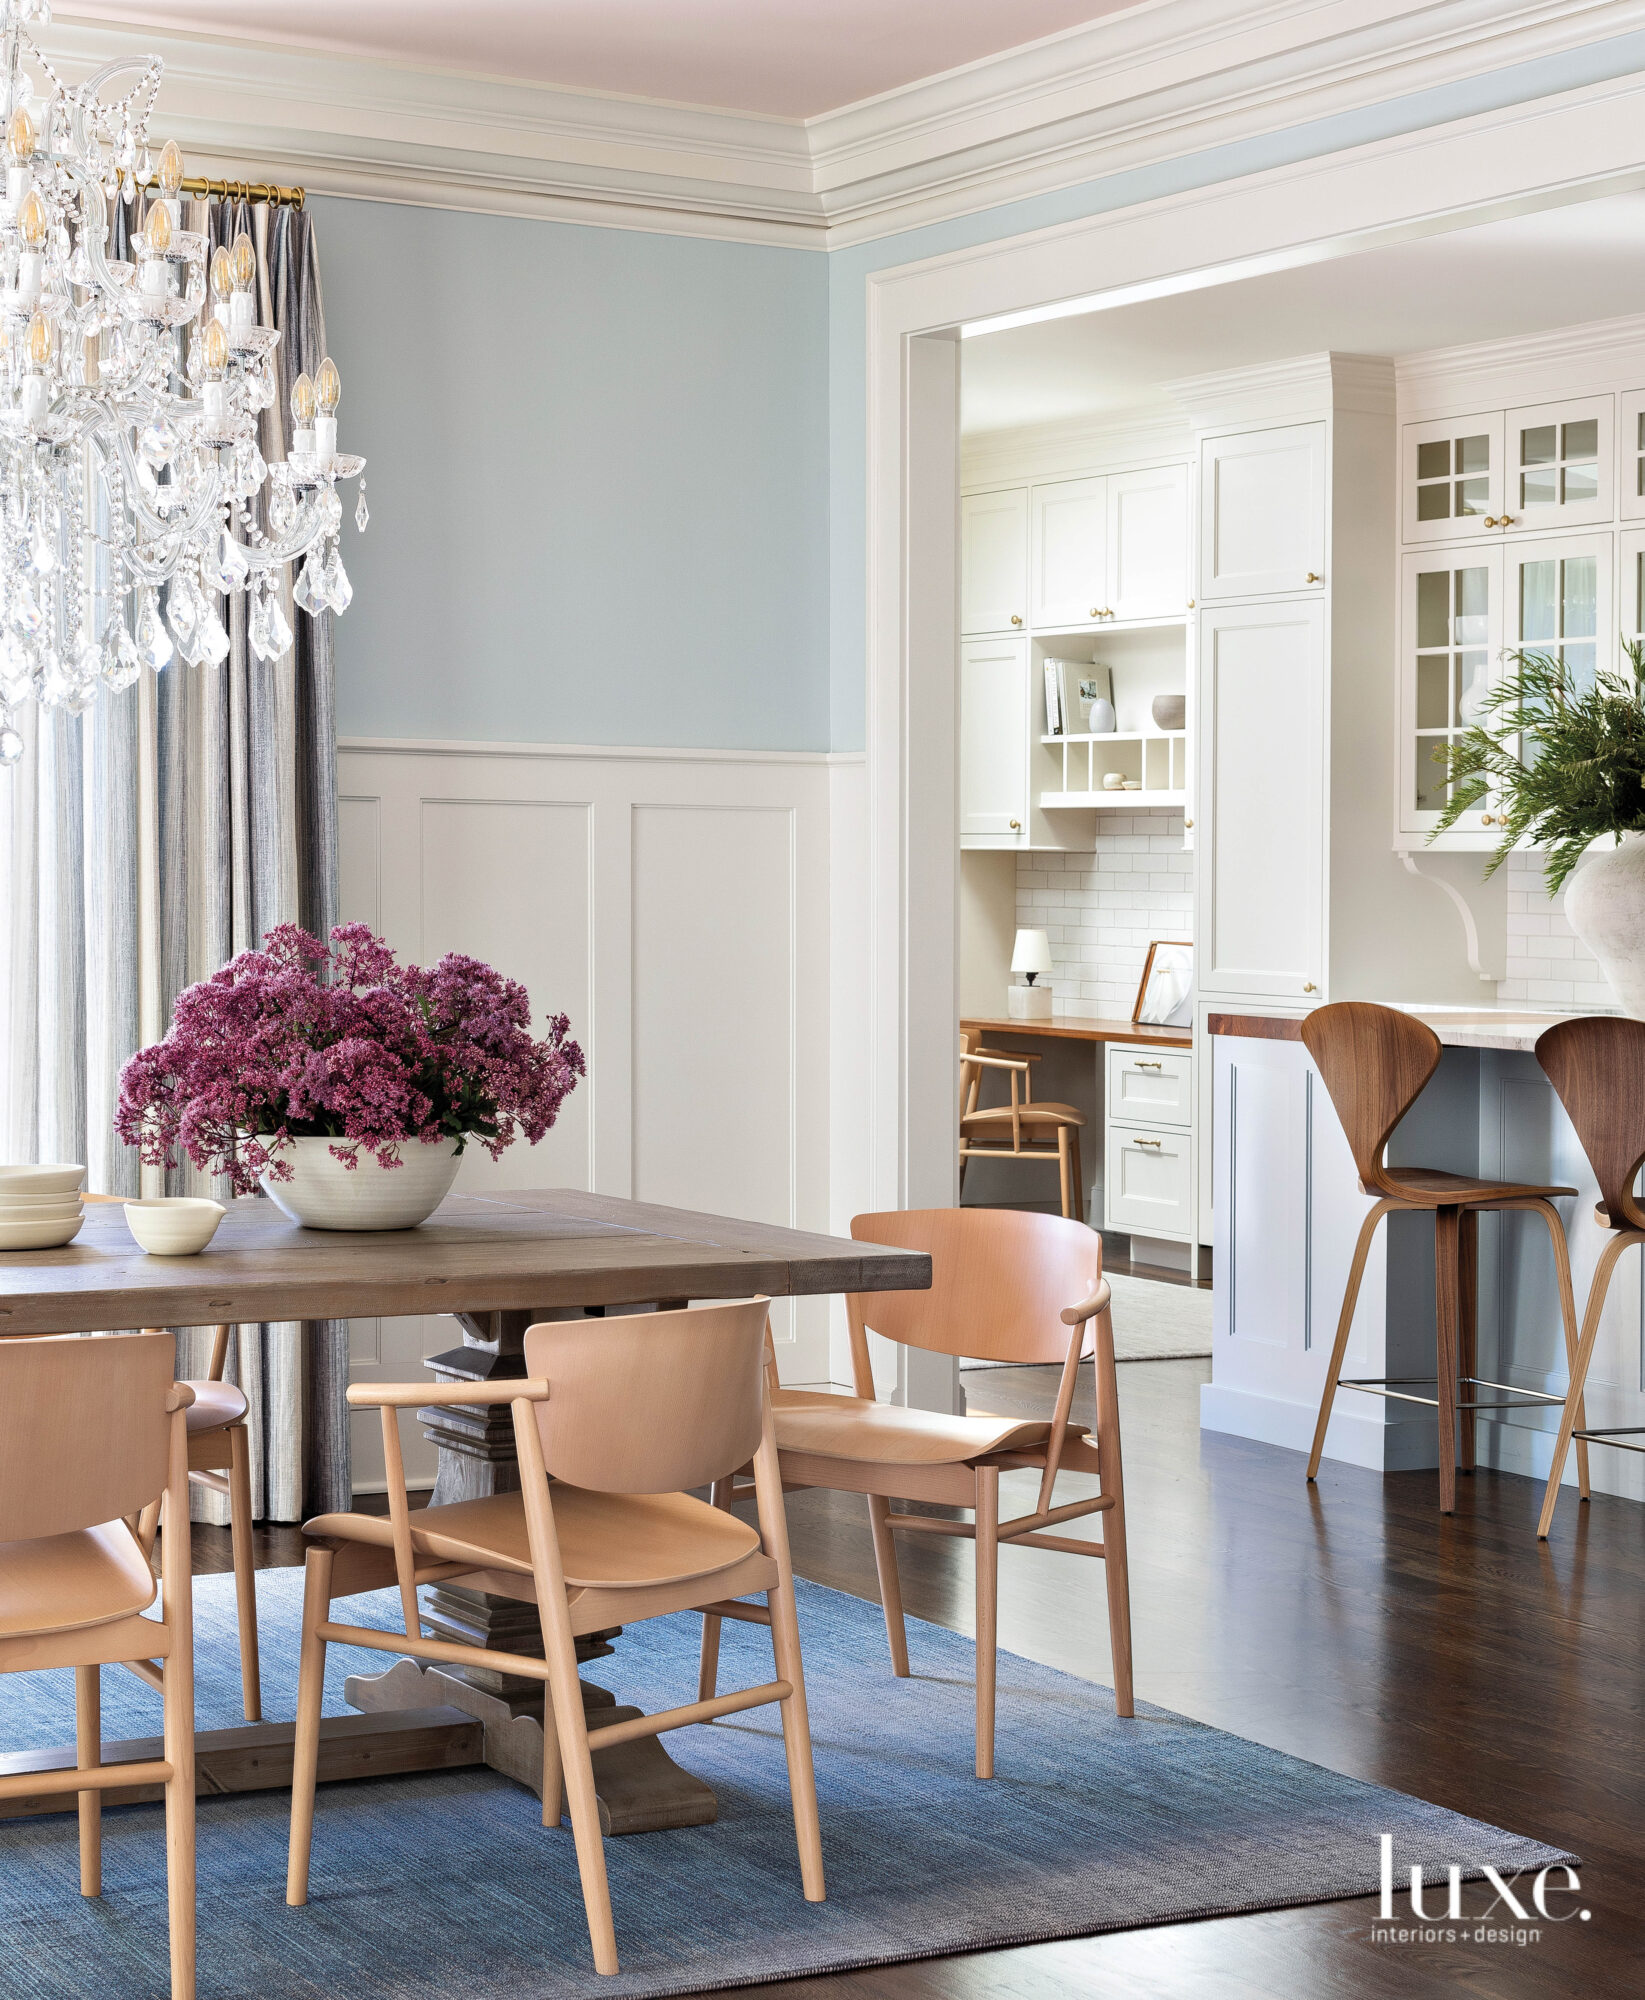 Detail shot of blue-painted dining room with a grand, crystal chandelier and wooden chairs.